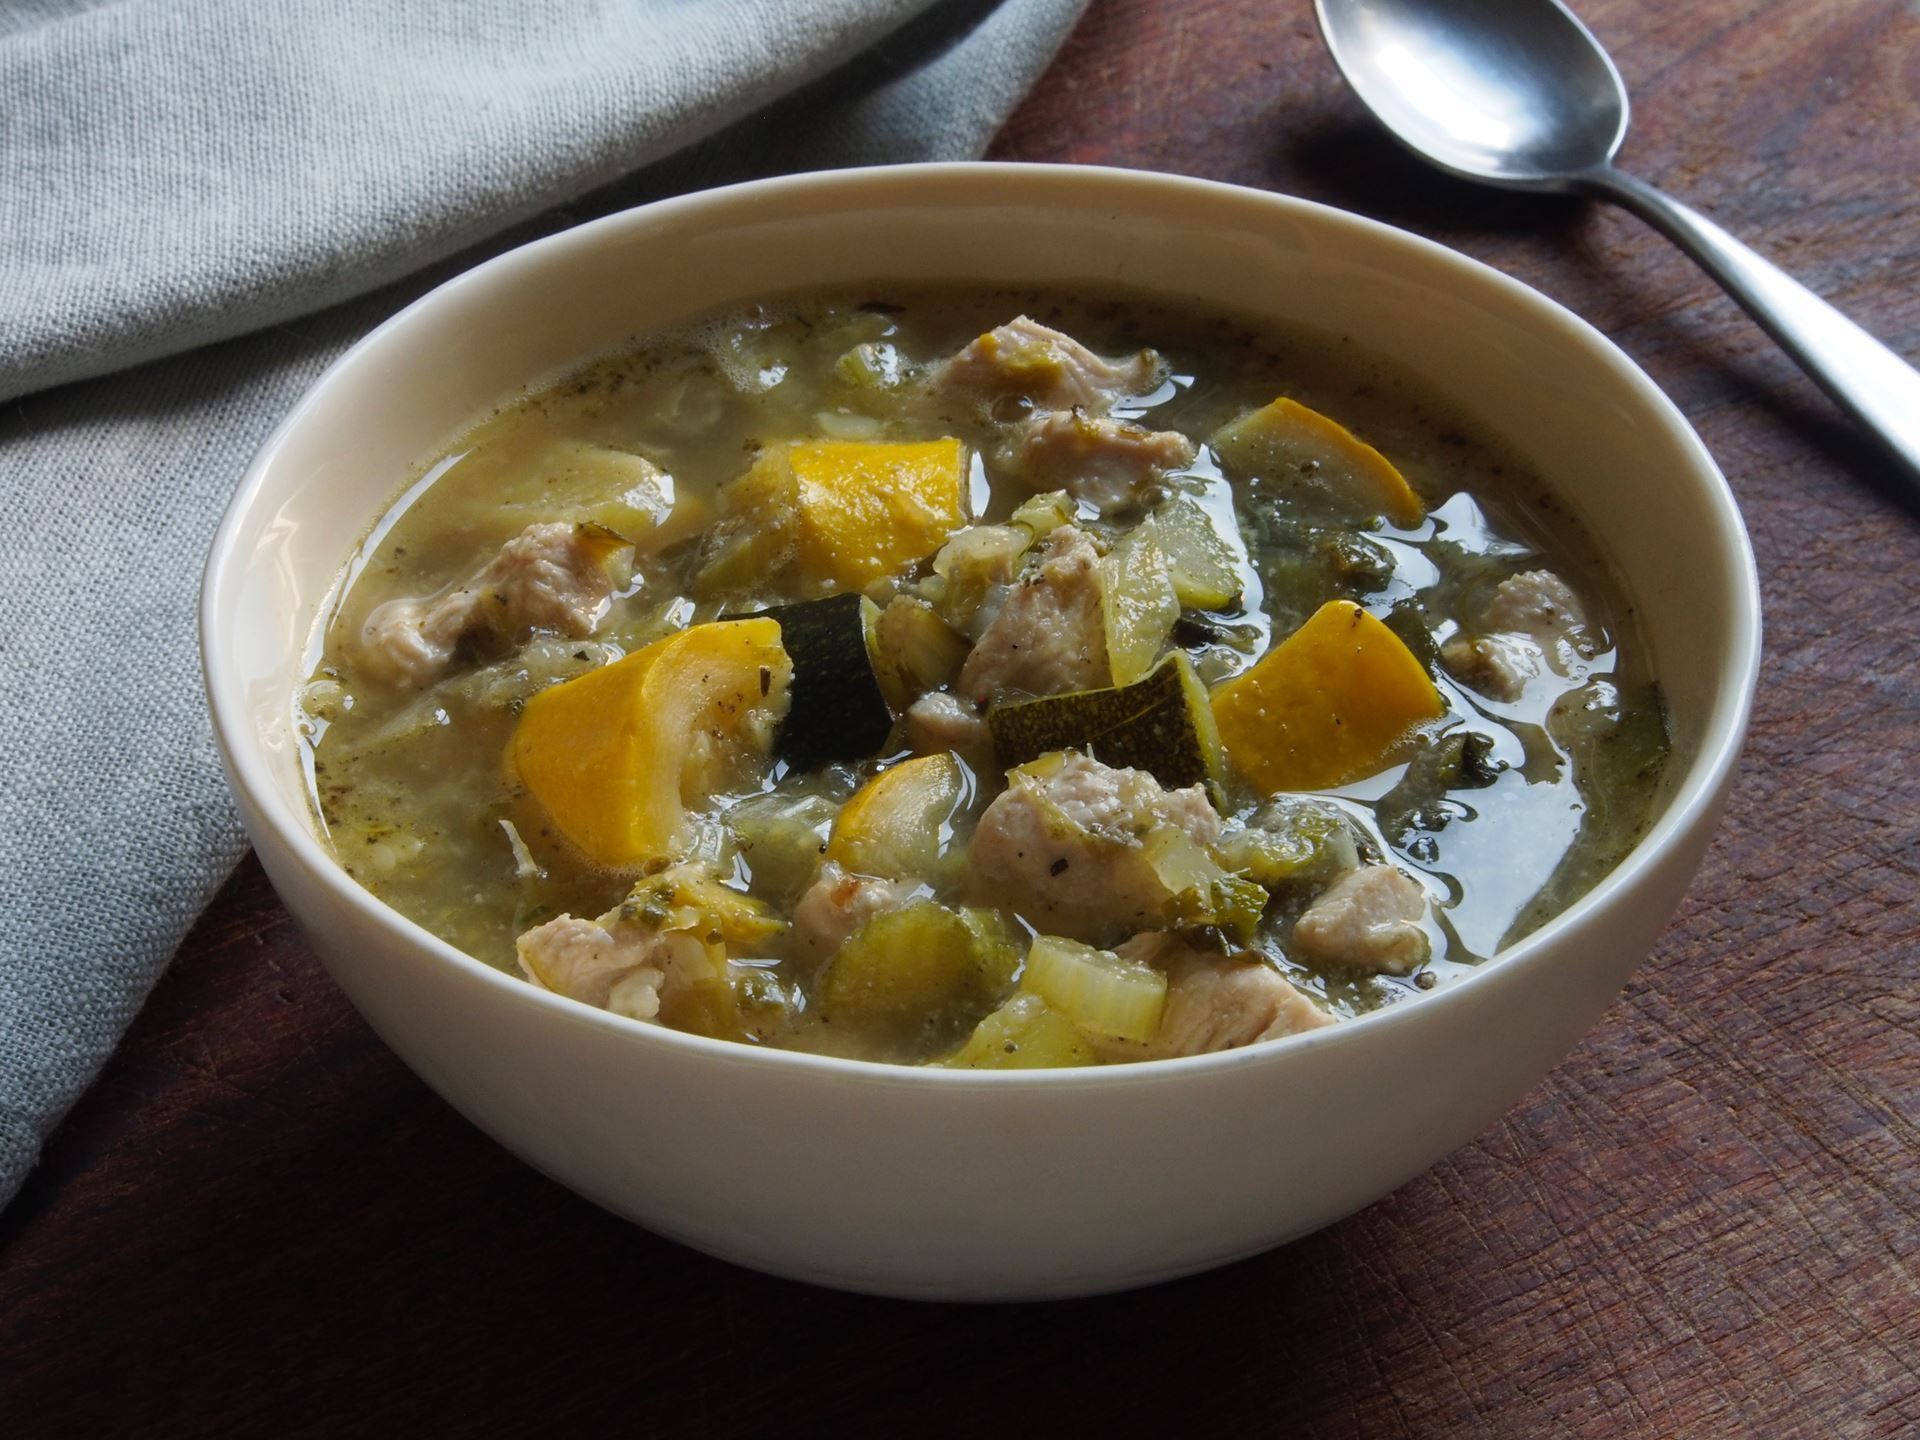 Picture of 22 oz -- Chicken-Vegetable Soup with Summer Squash and Chard